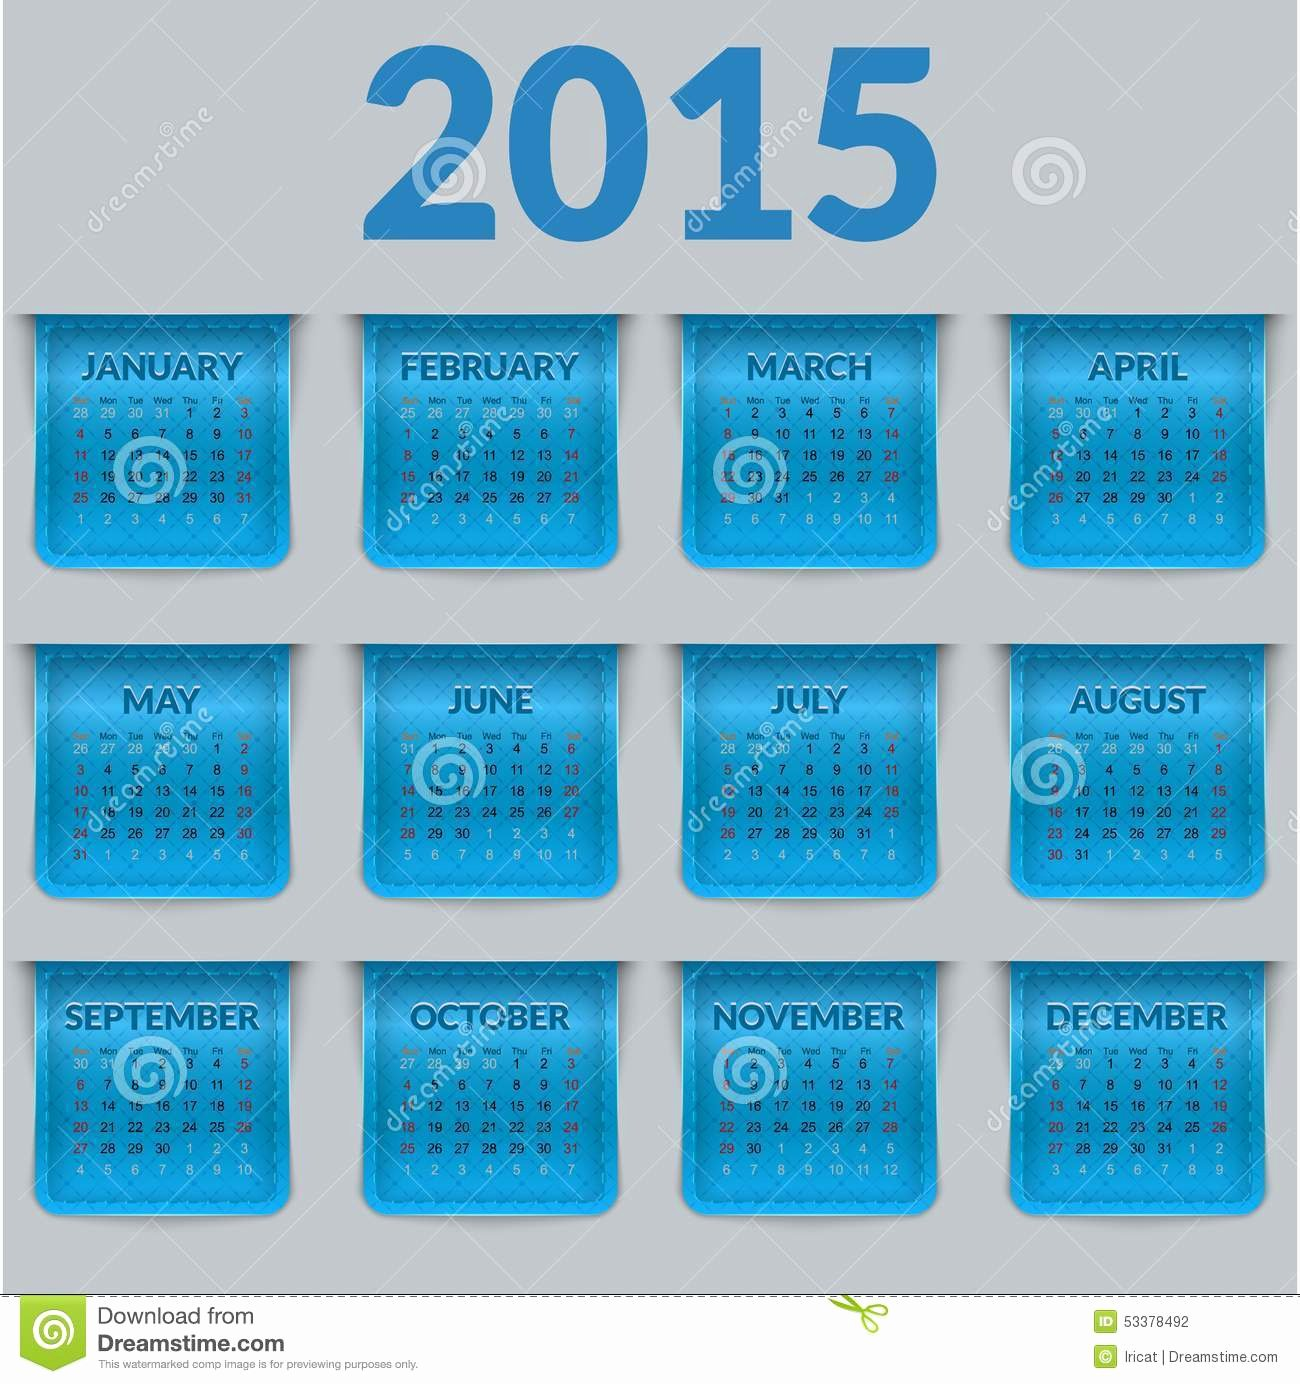 Calendar Bookmark Template Inspirational Calendar for 2015 In the form A Glossy Textured Labels